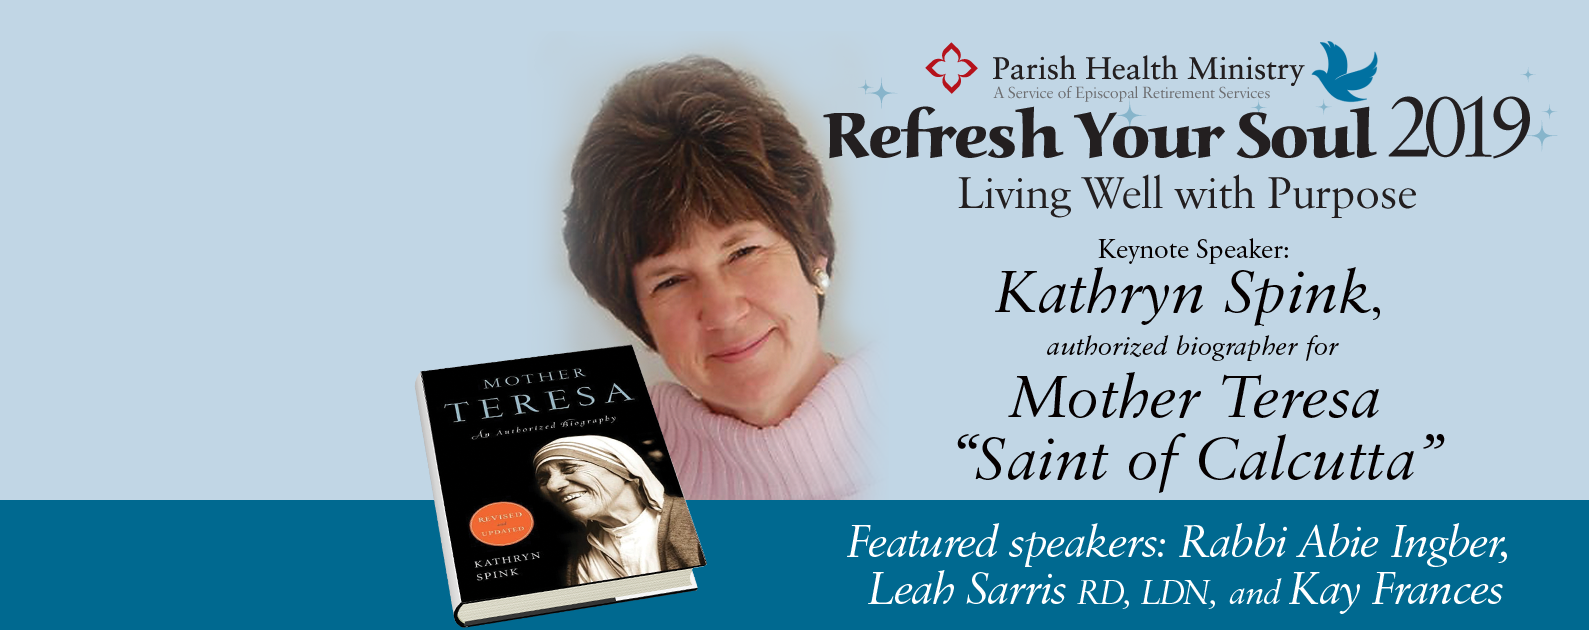 Registration is open for Refresh Your Soul 2019: Living Well with Purpose